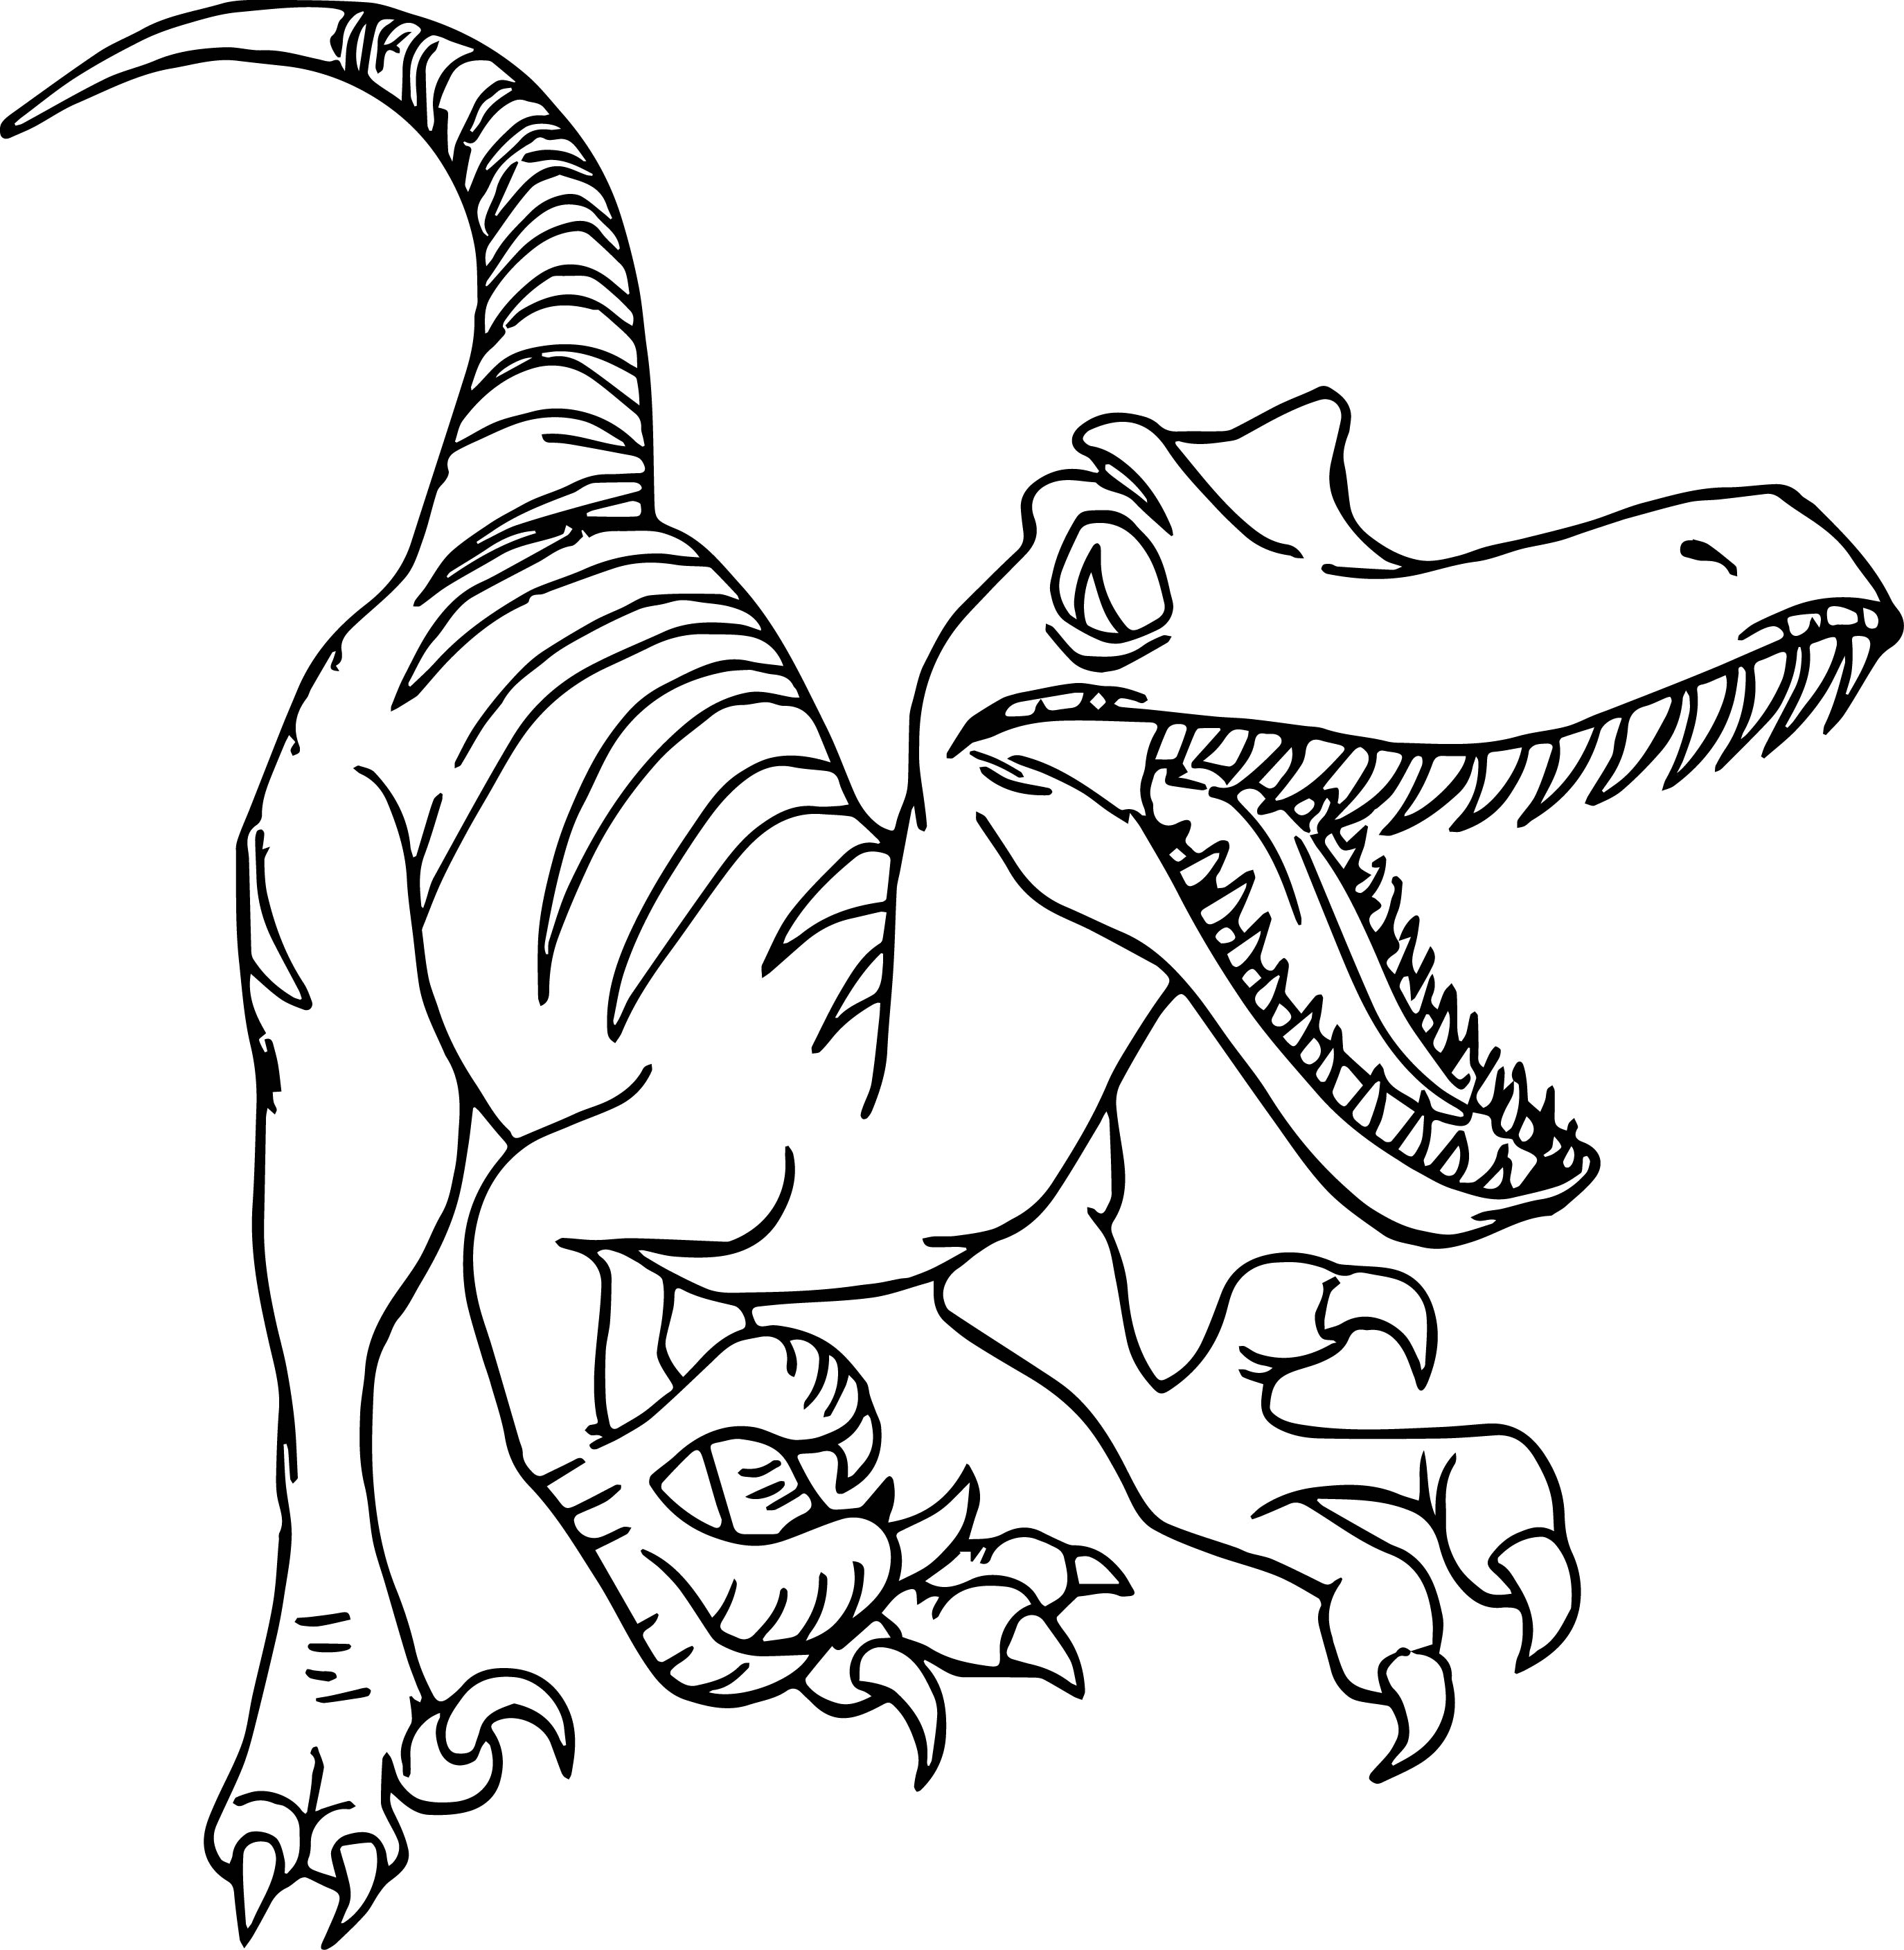 2749x2815 Luxury Raptor Coloring Pages Collection